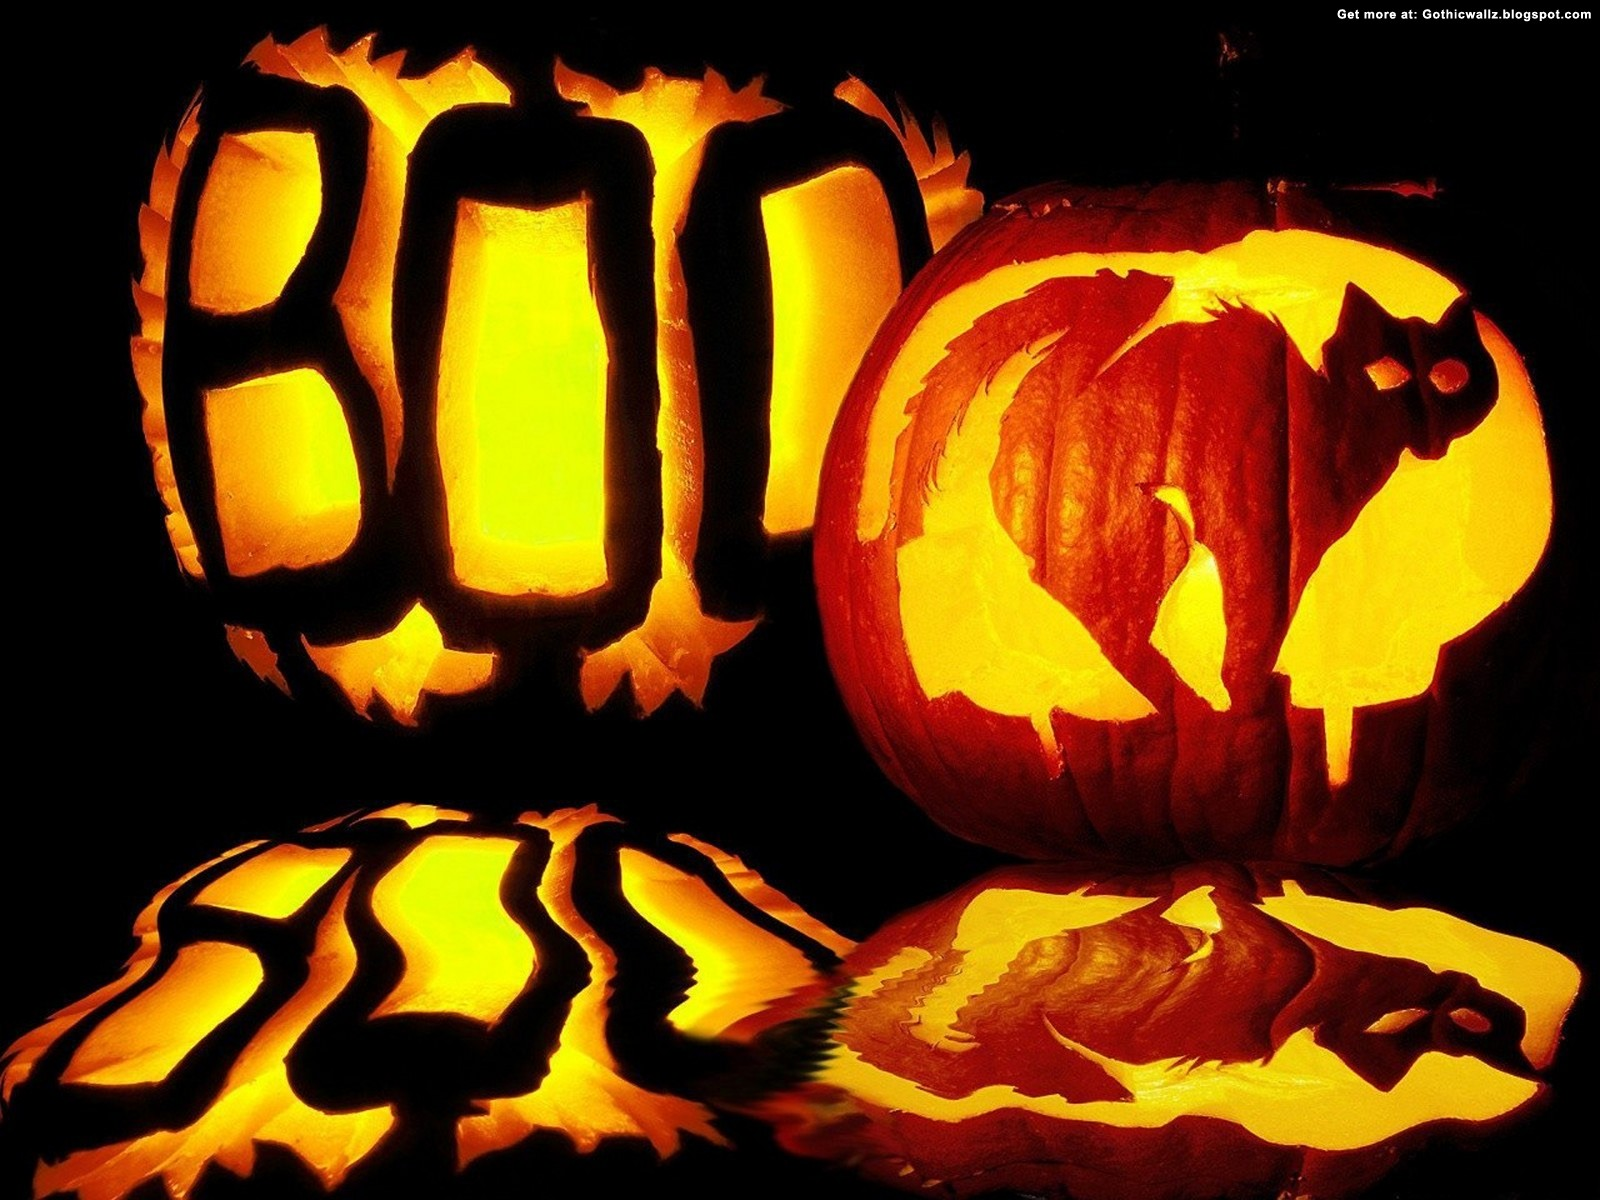 boo halloween | Gothic Wallpaper Download